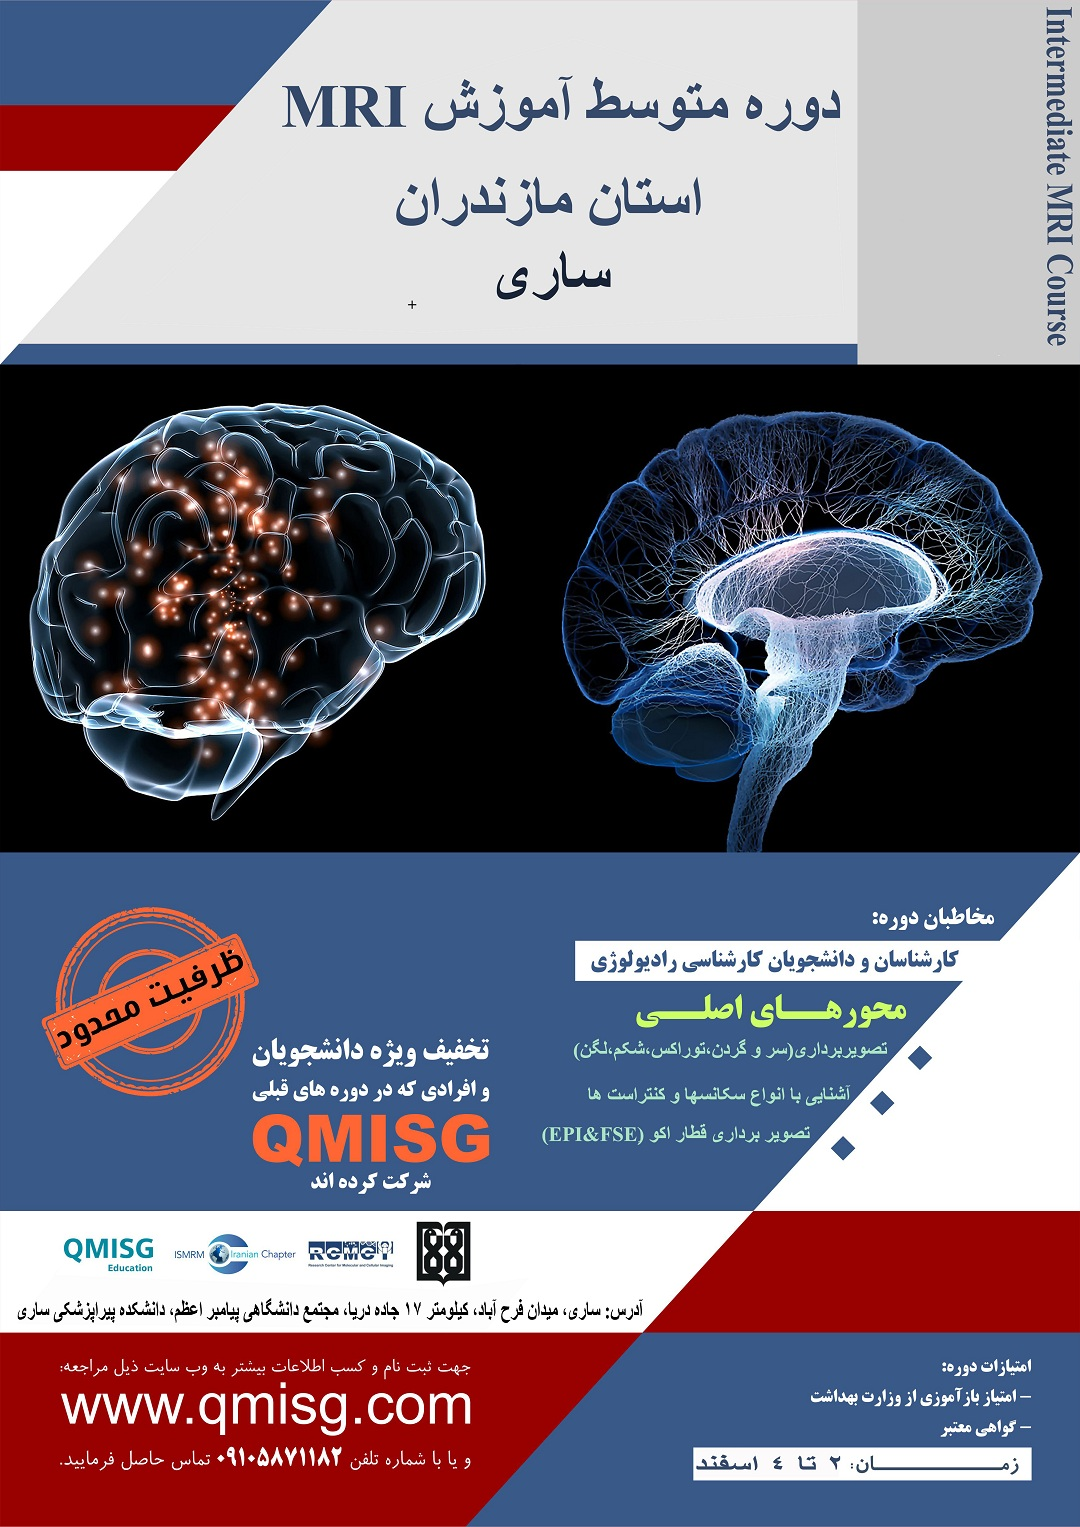 Fmri basics and clinical applications pdf viewer